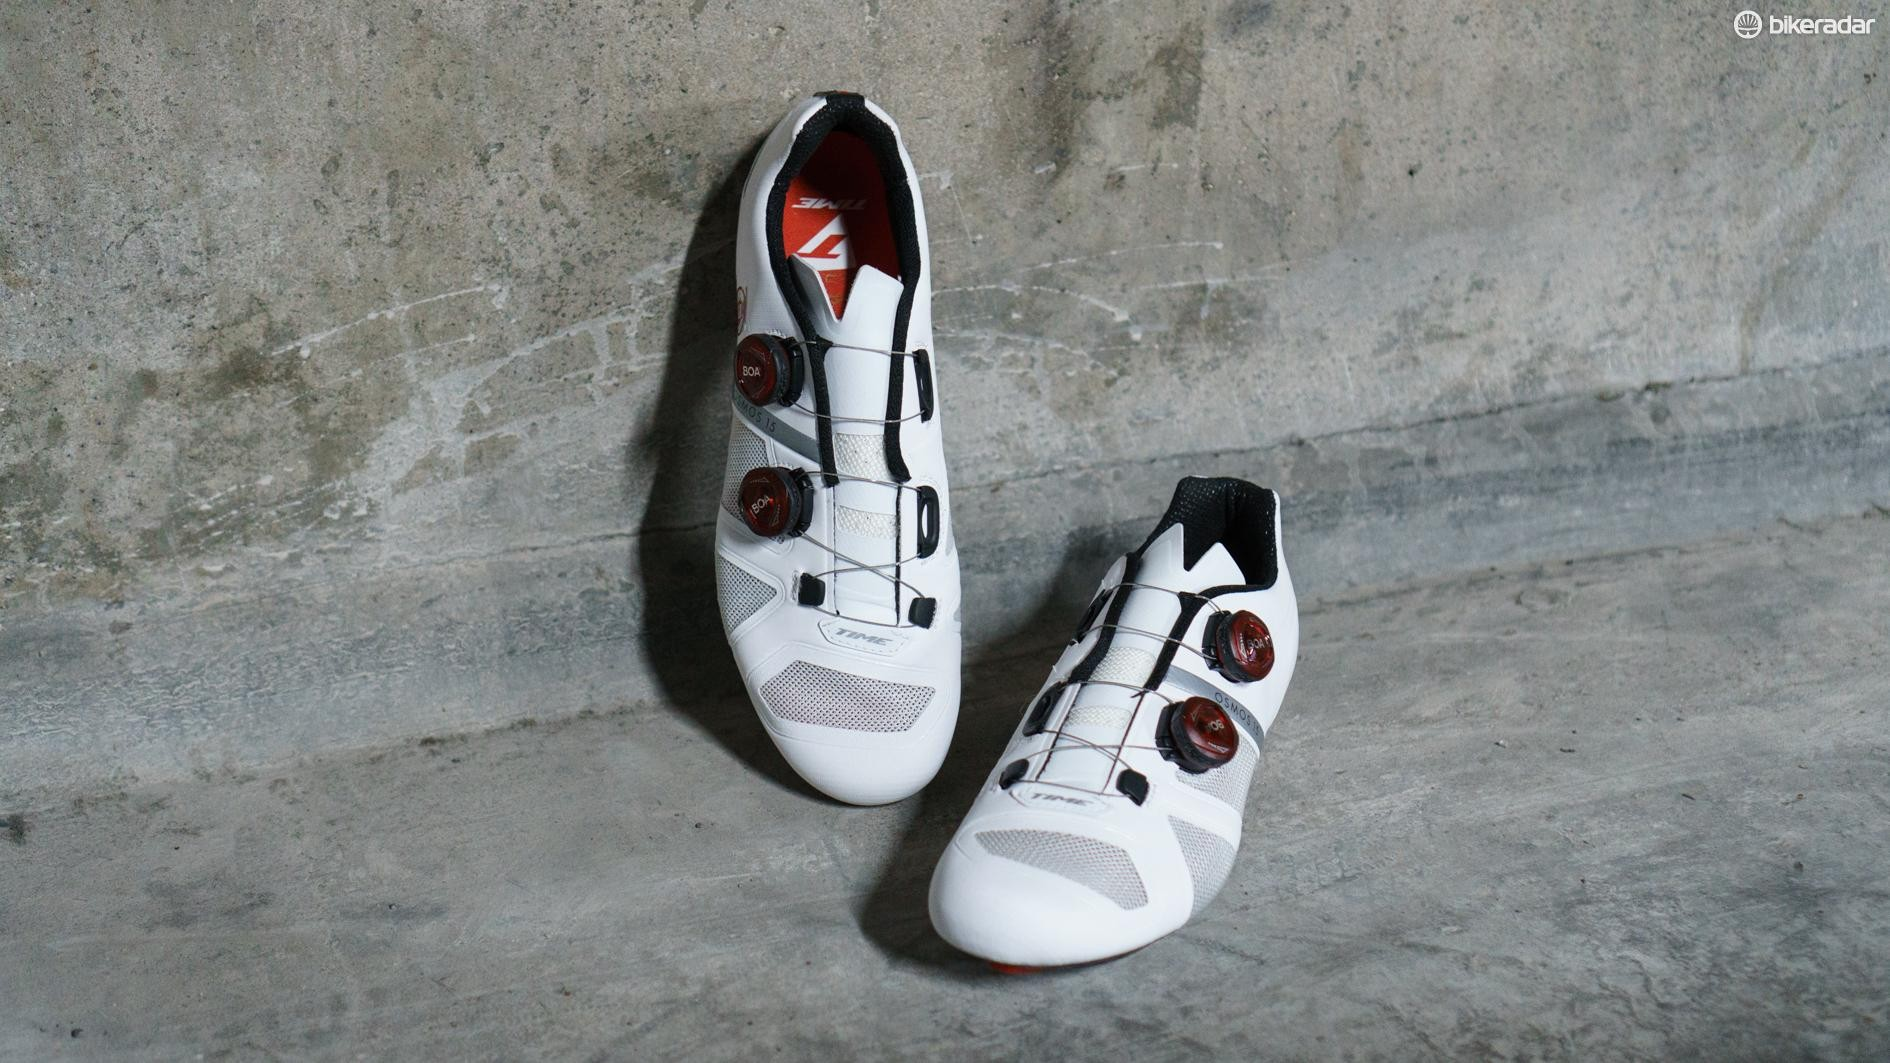 Time has re-entered the road cycling shoe market with the OSMOS